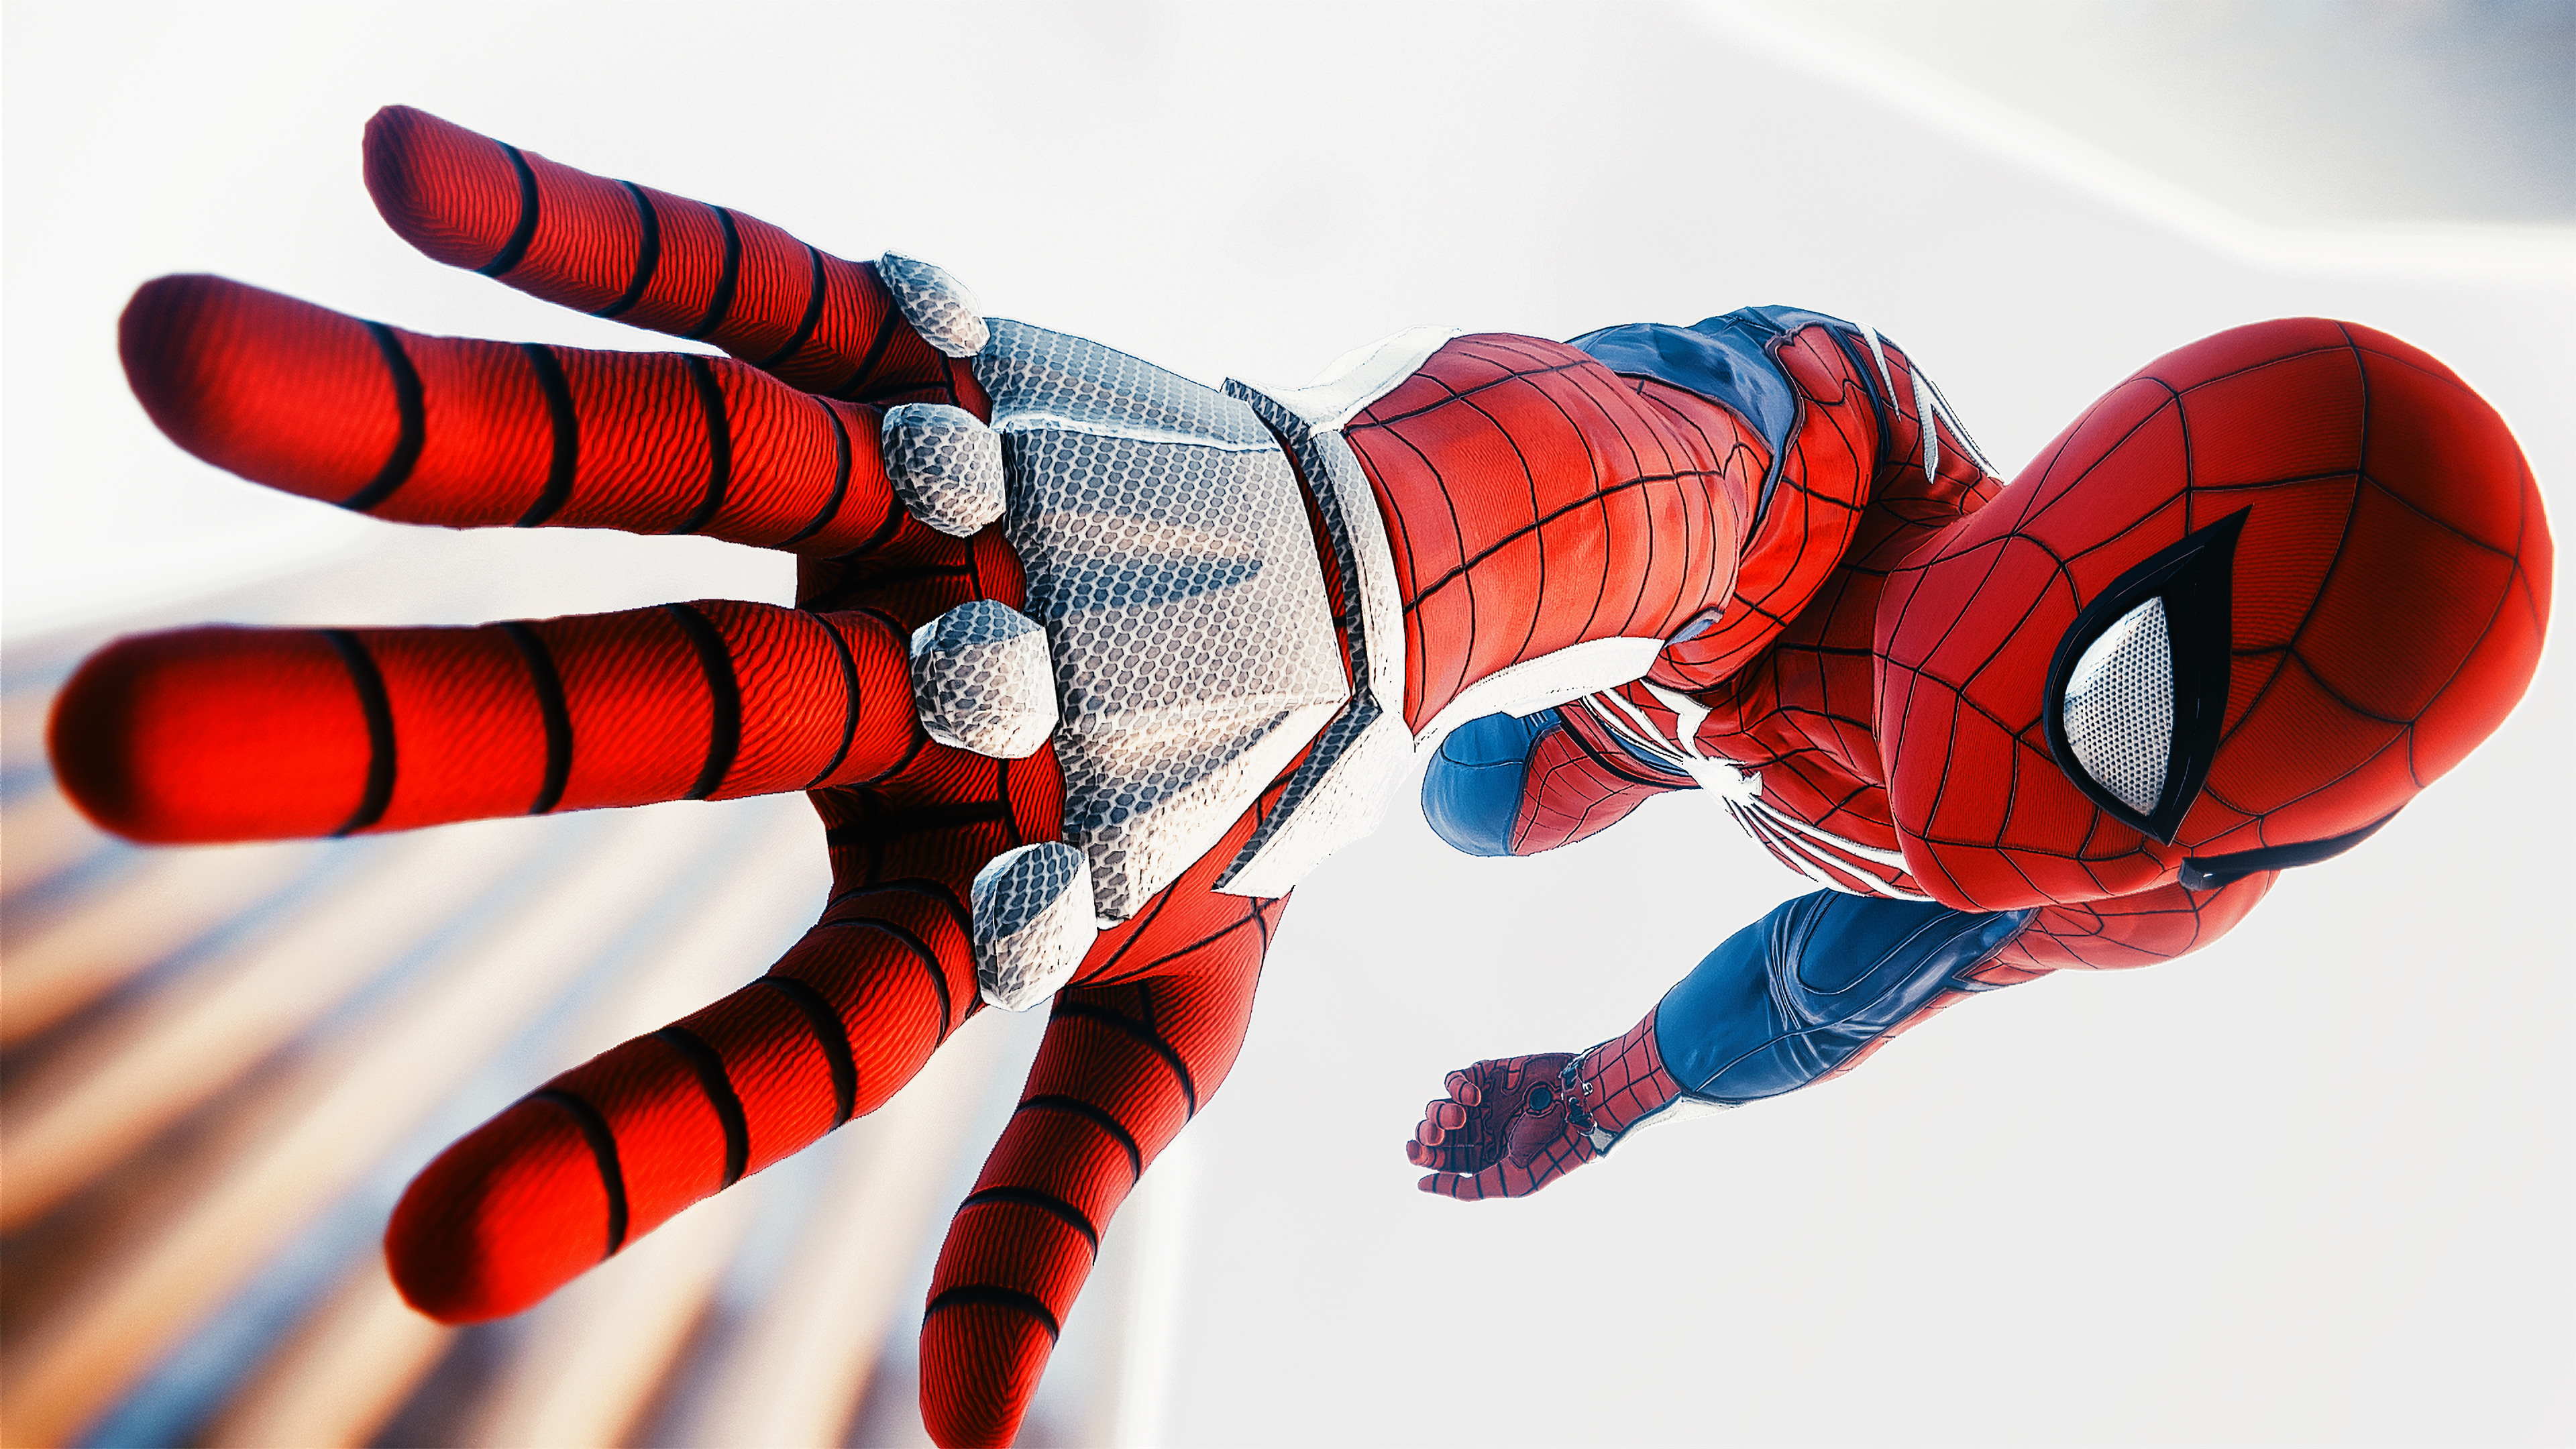 spiderman ps4 advanced suit 4k 1547319554 - Spiderman Ps4 Advanced Suit 4k - superheroes wallpapers, spiderman wallpapers, spiderman ps4 wallpapers, ps games wallpapers, hd-wallpapers, games wallpapers, 4k-wallpapers, 2018 games wallpapers